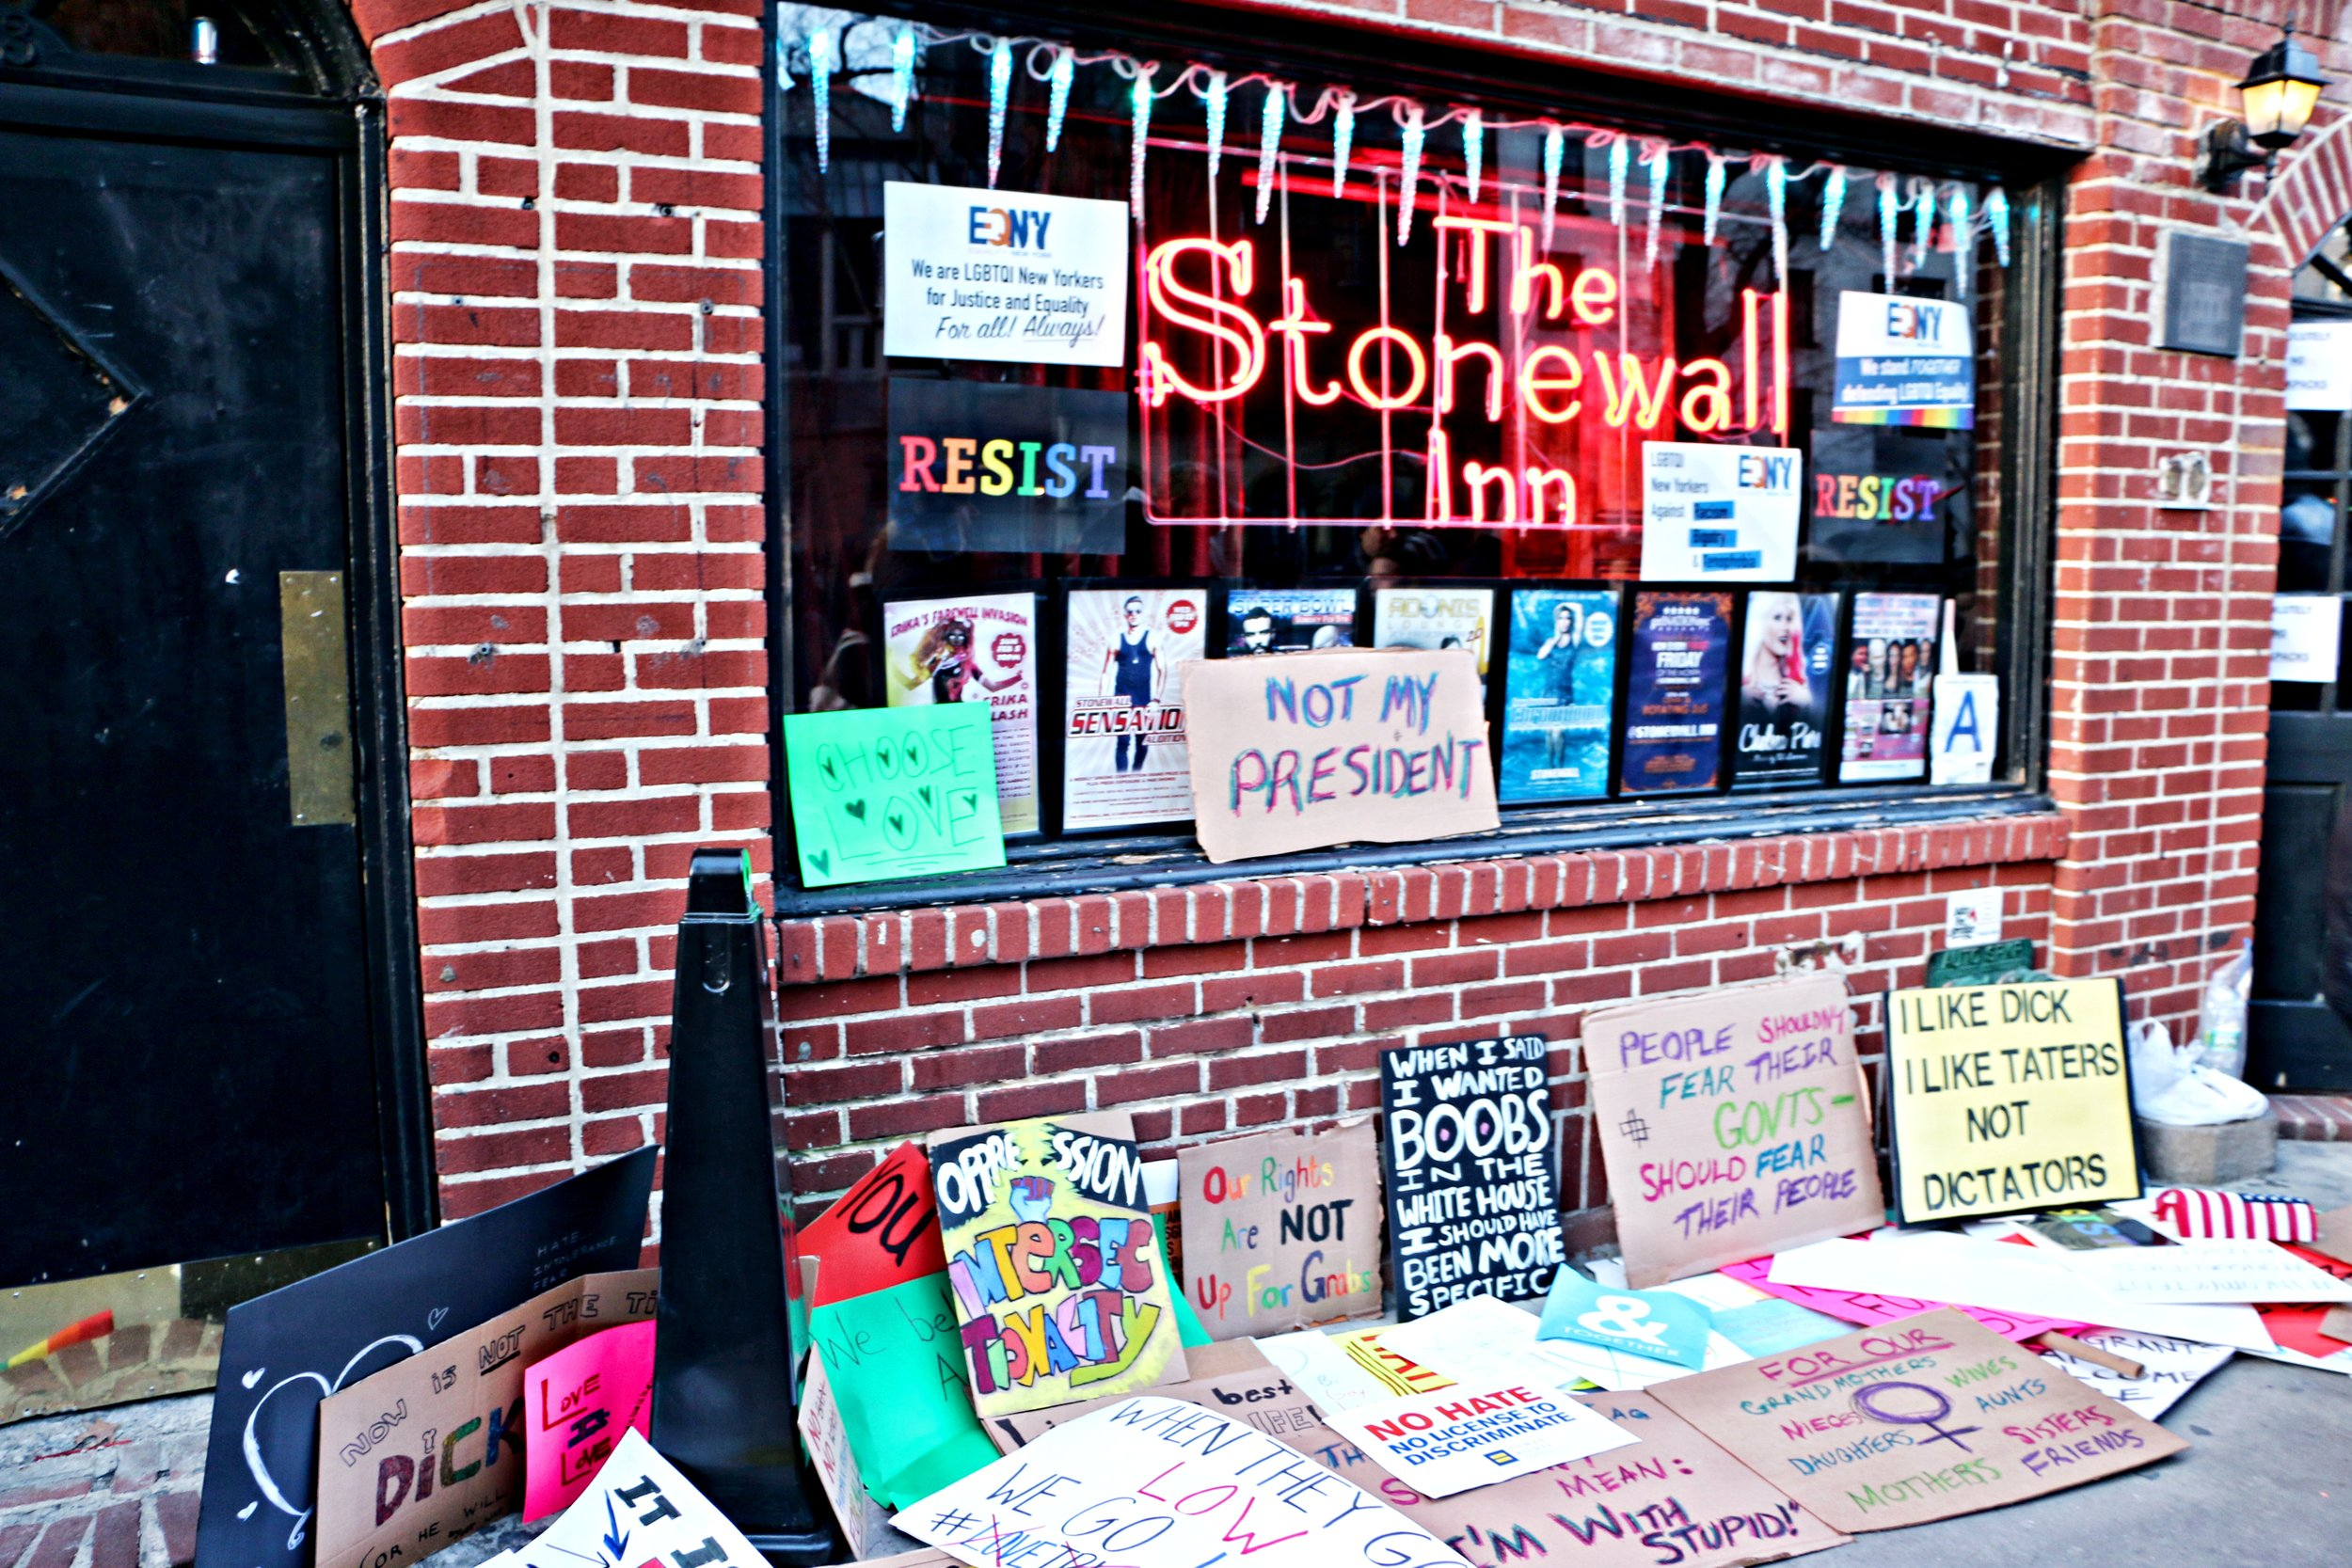 Stonewall_05_color.jpg